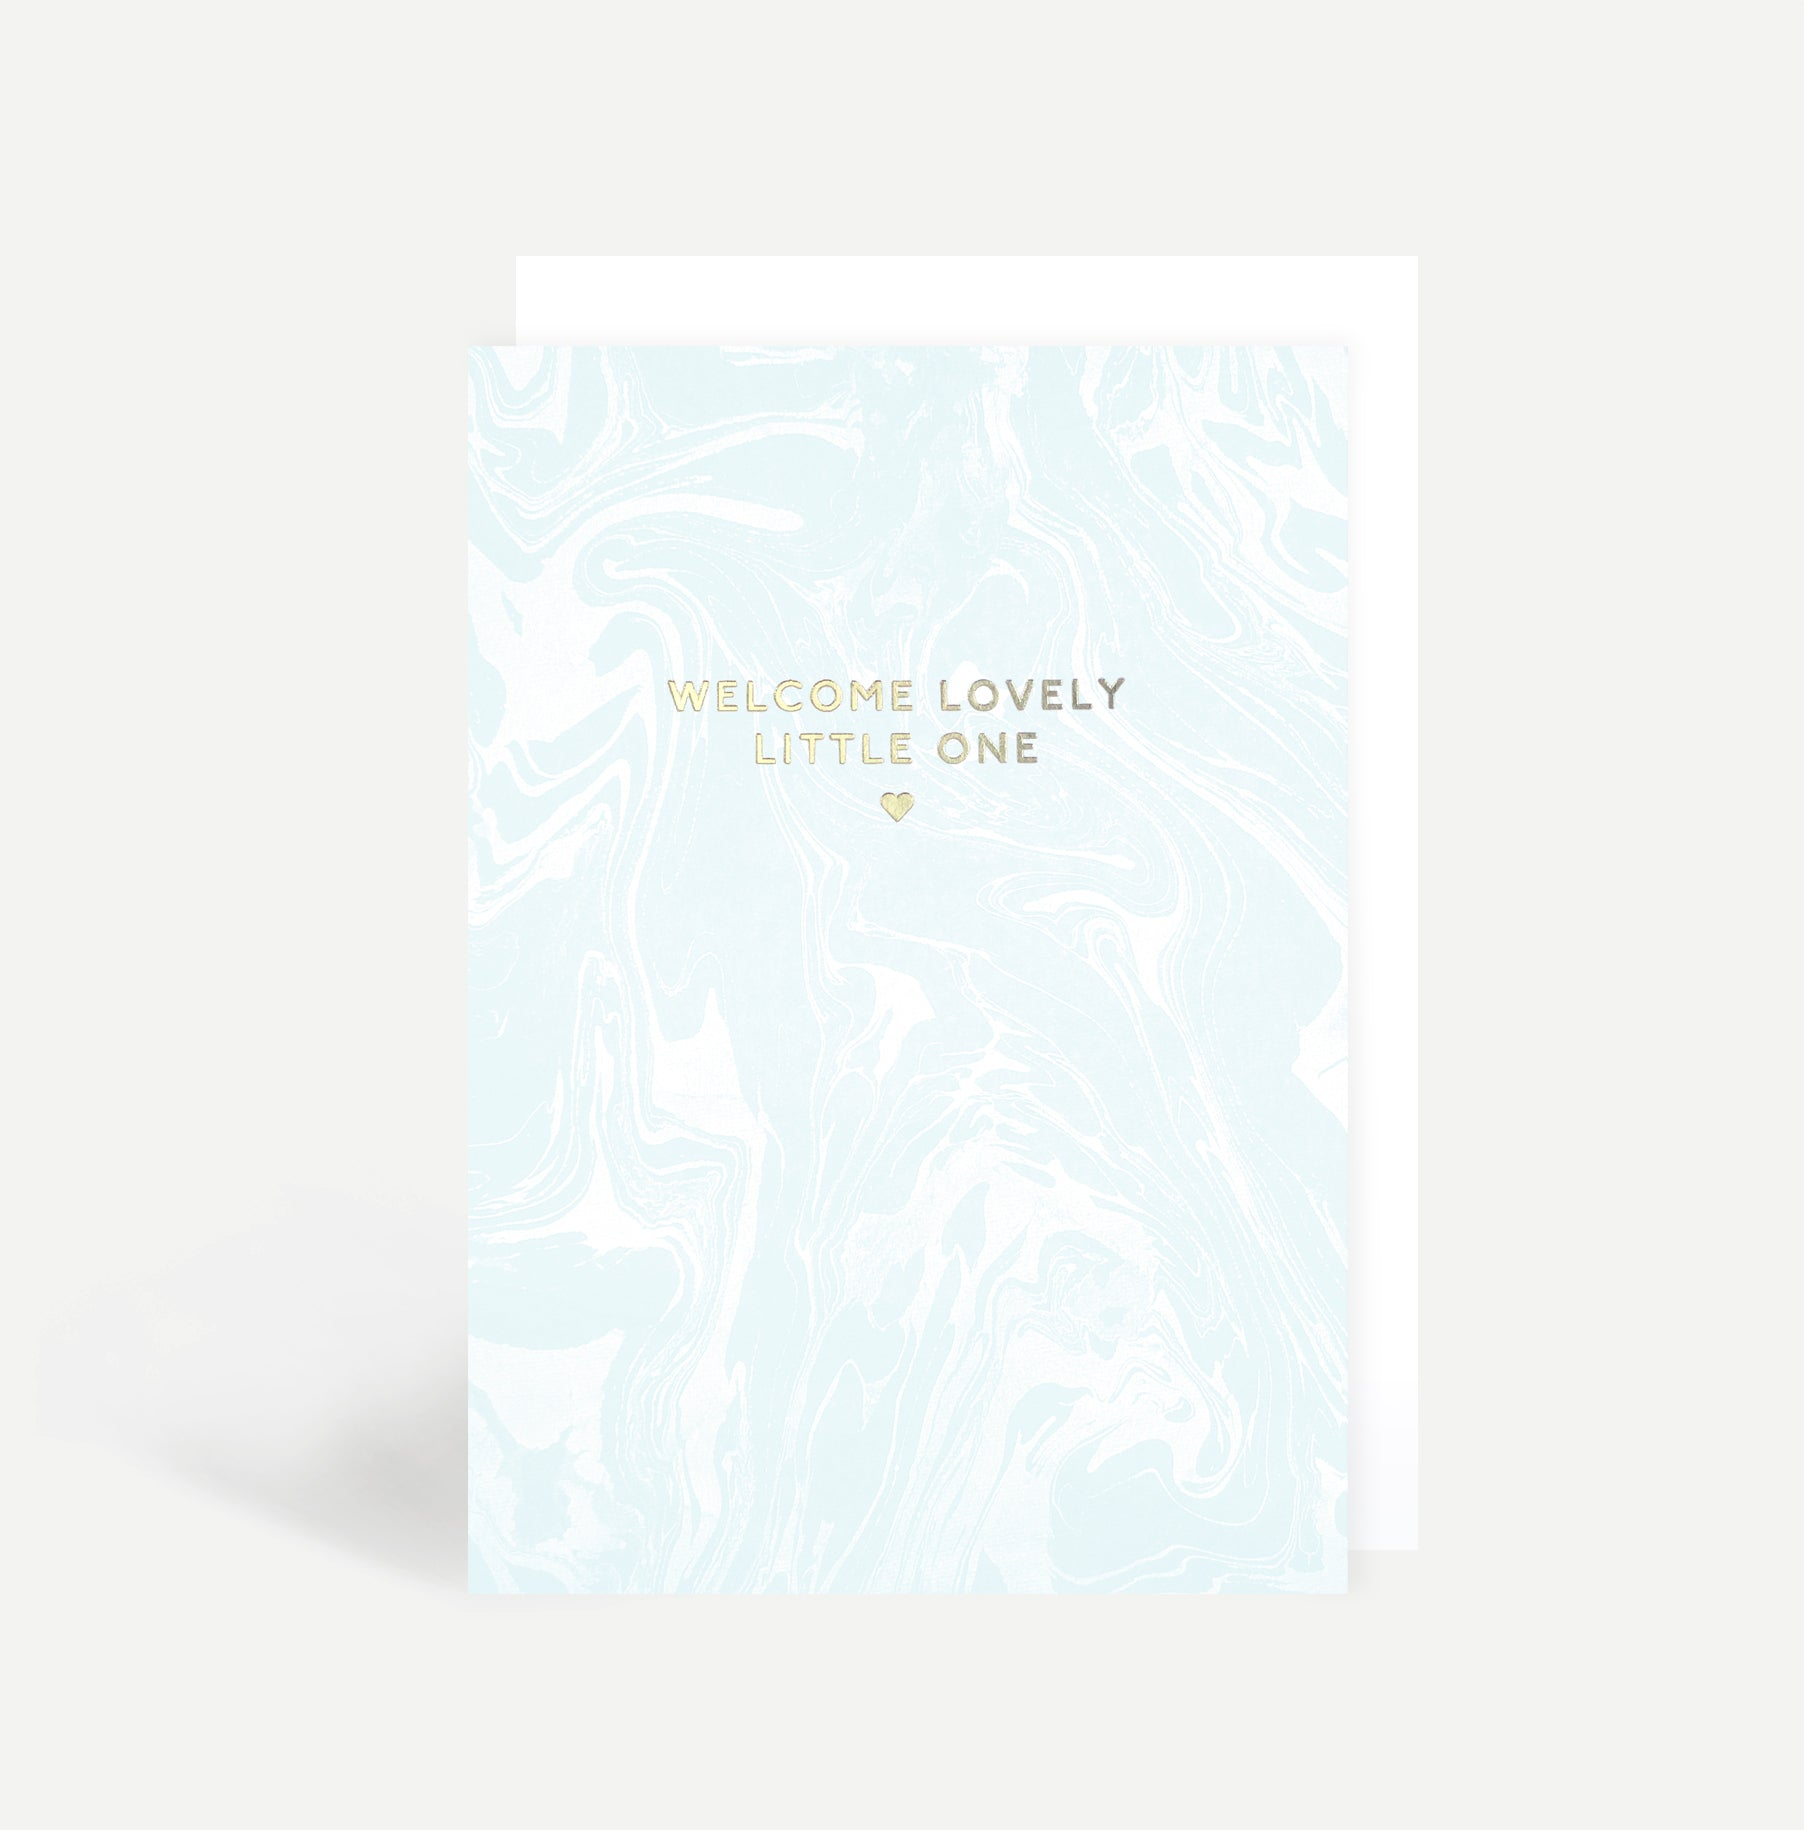 Welcome baby boy greetings card lily loves shopping welcome baby boy greetings card m4hsunfo